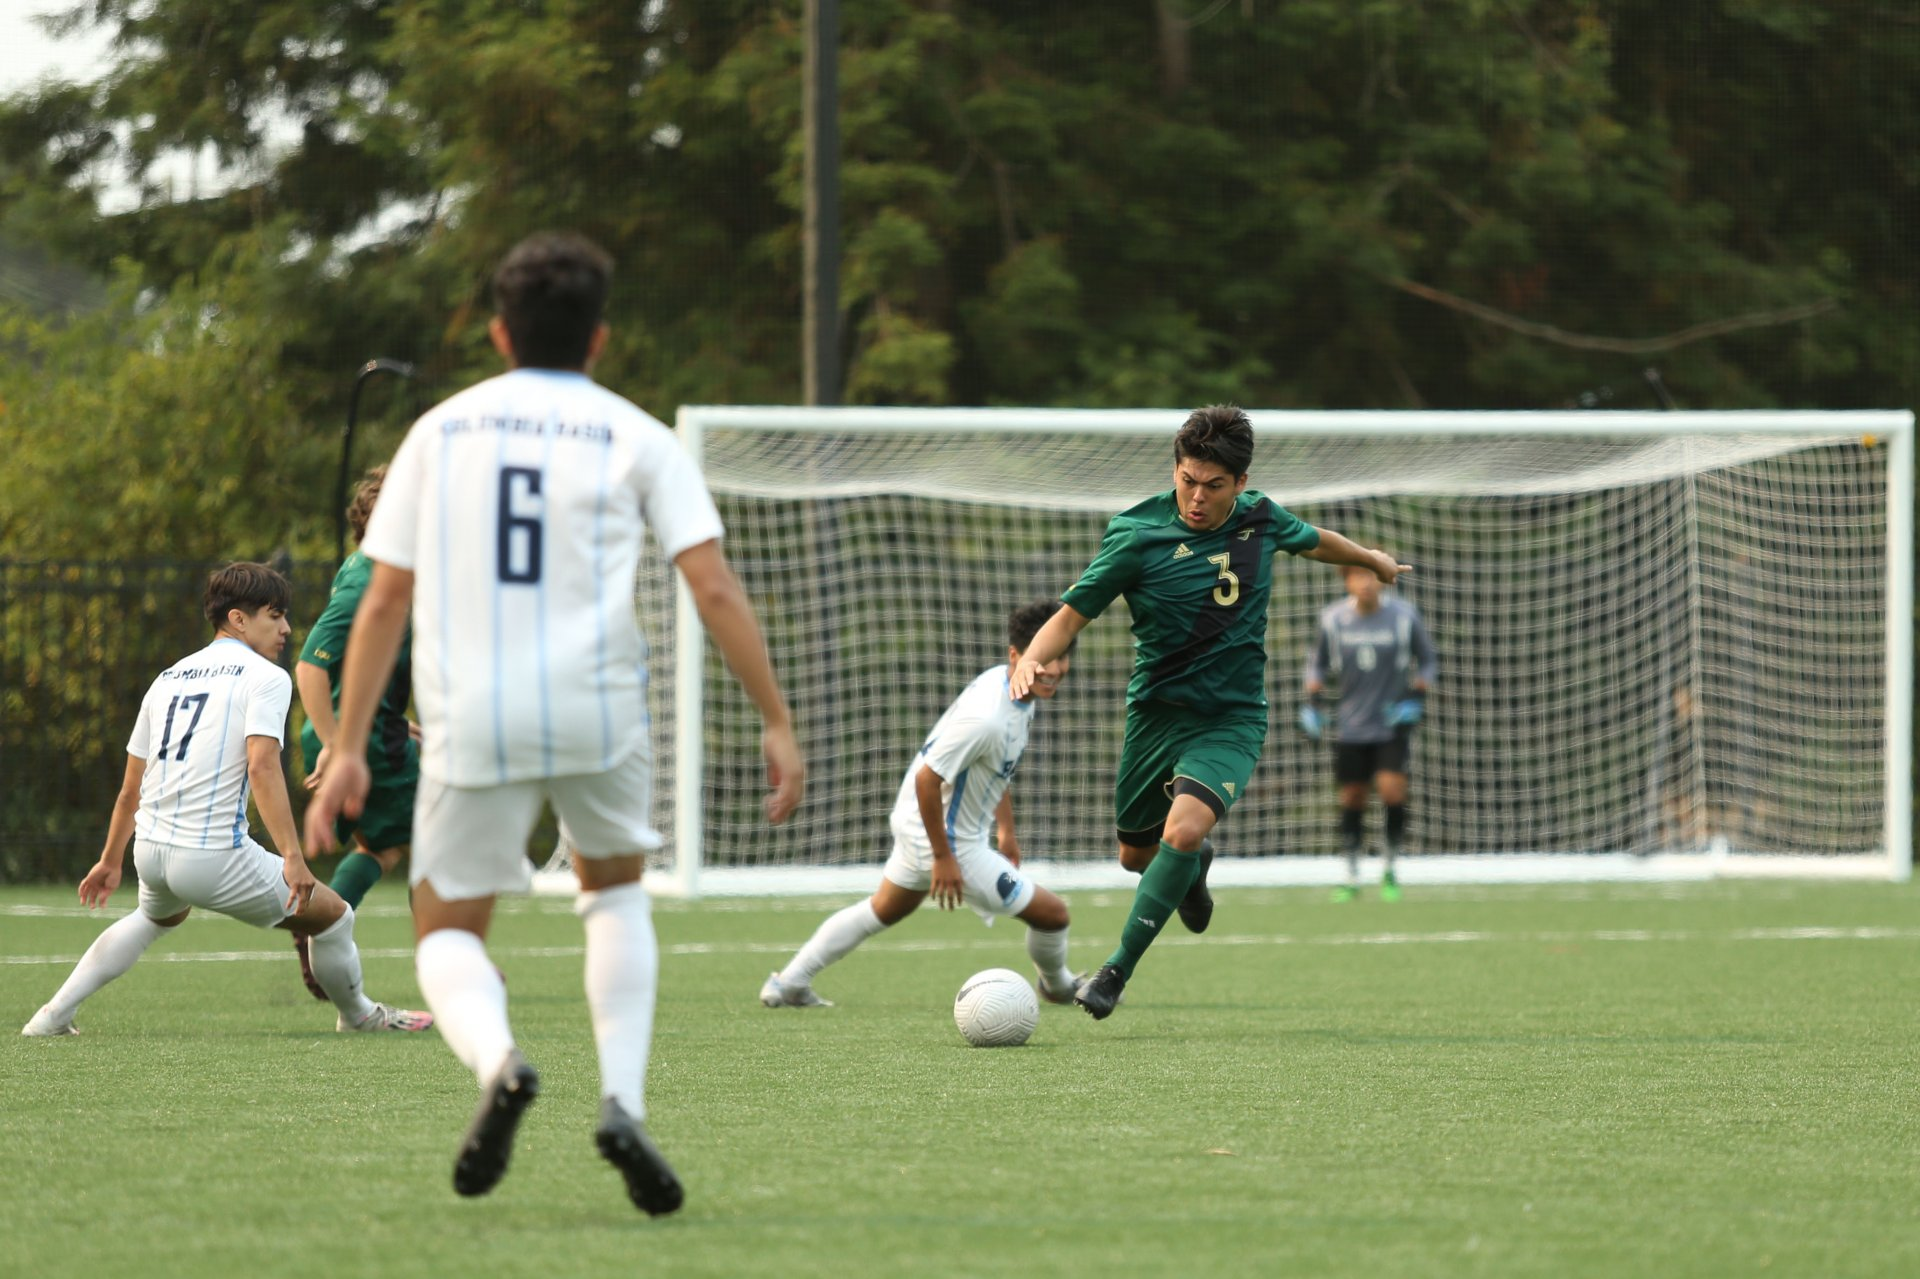 Christian Gonzalez kicks the ball during a game against visiting Columbia Basin at College Creek Field on Aug. 28. (Photo courtesy of Thomas Lal/HSU Athletics)